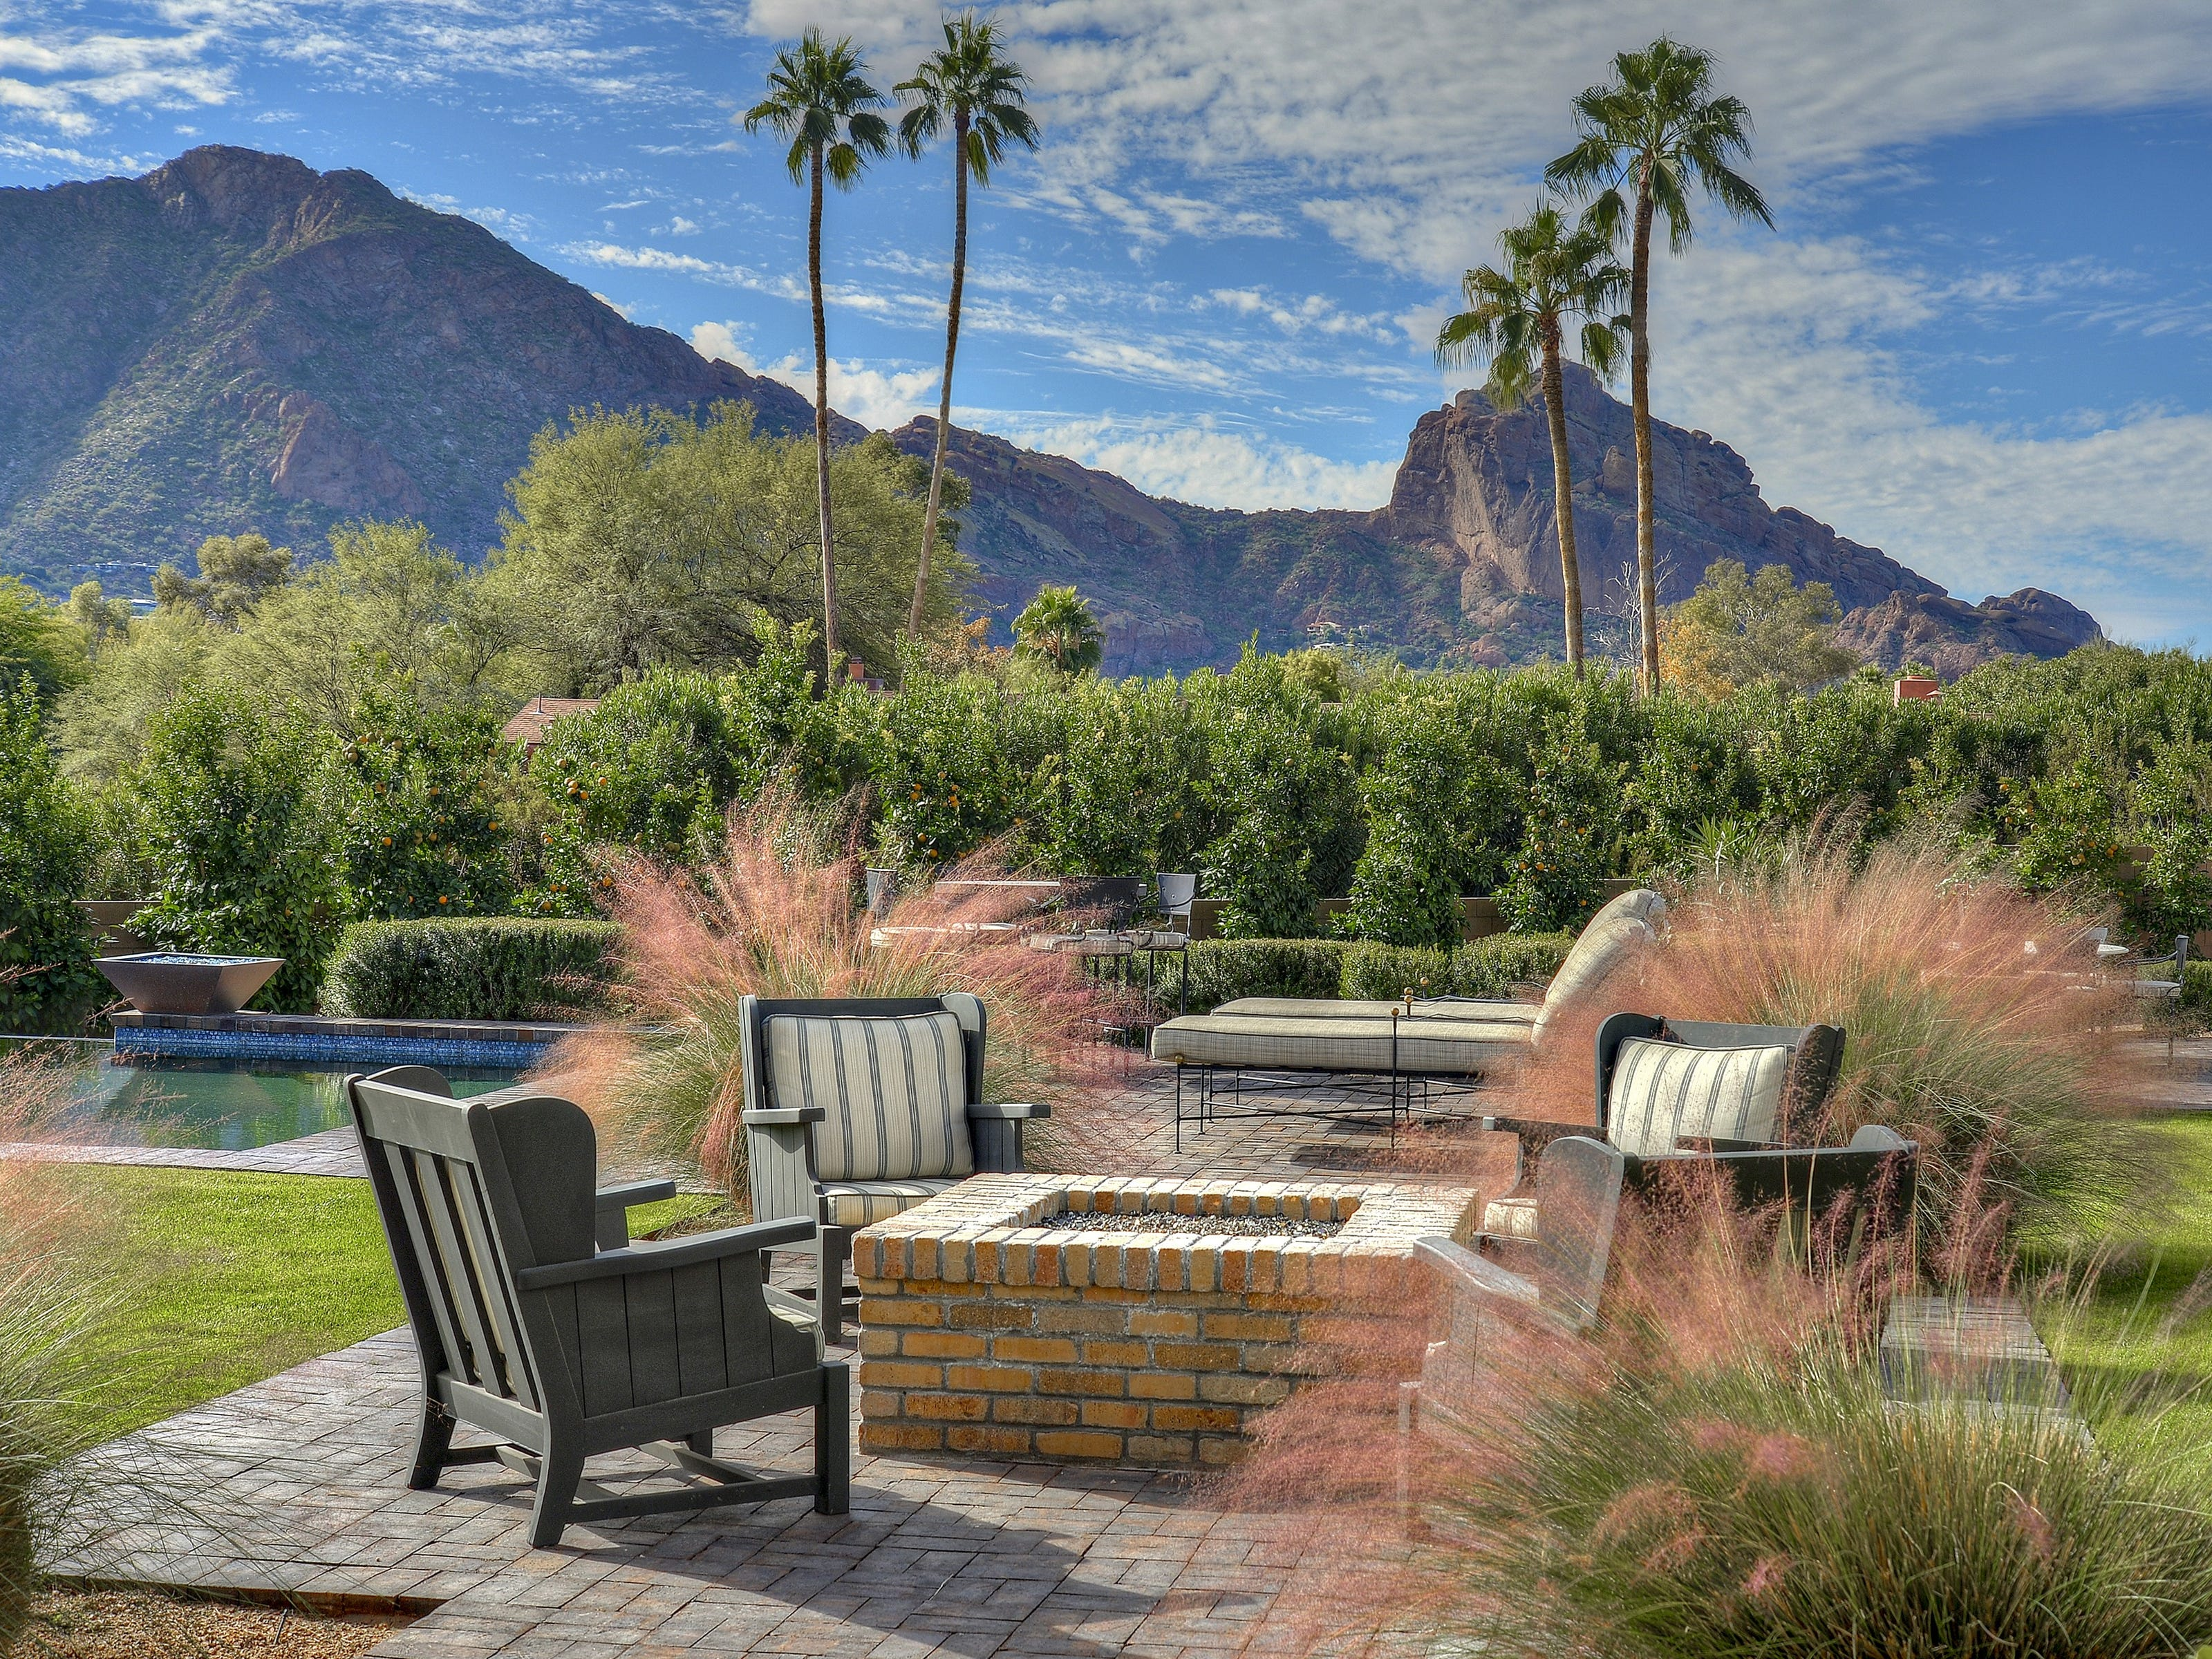 The $4.62M Paradise Valley mansion purchased by Marc Nemer comes with a pool, firepit and spectacular views of Camelback Mountain.